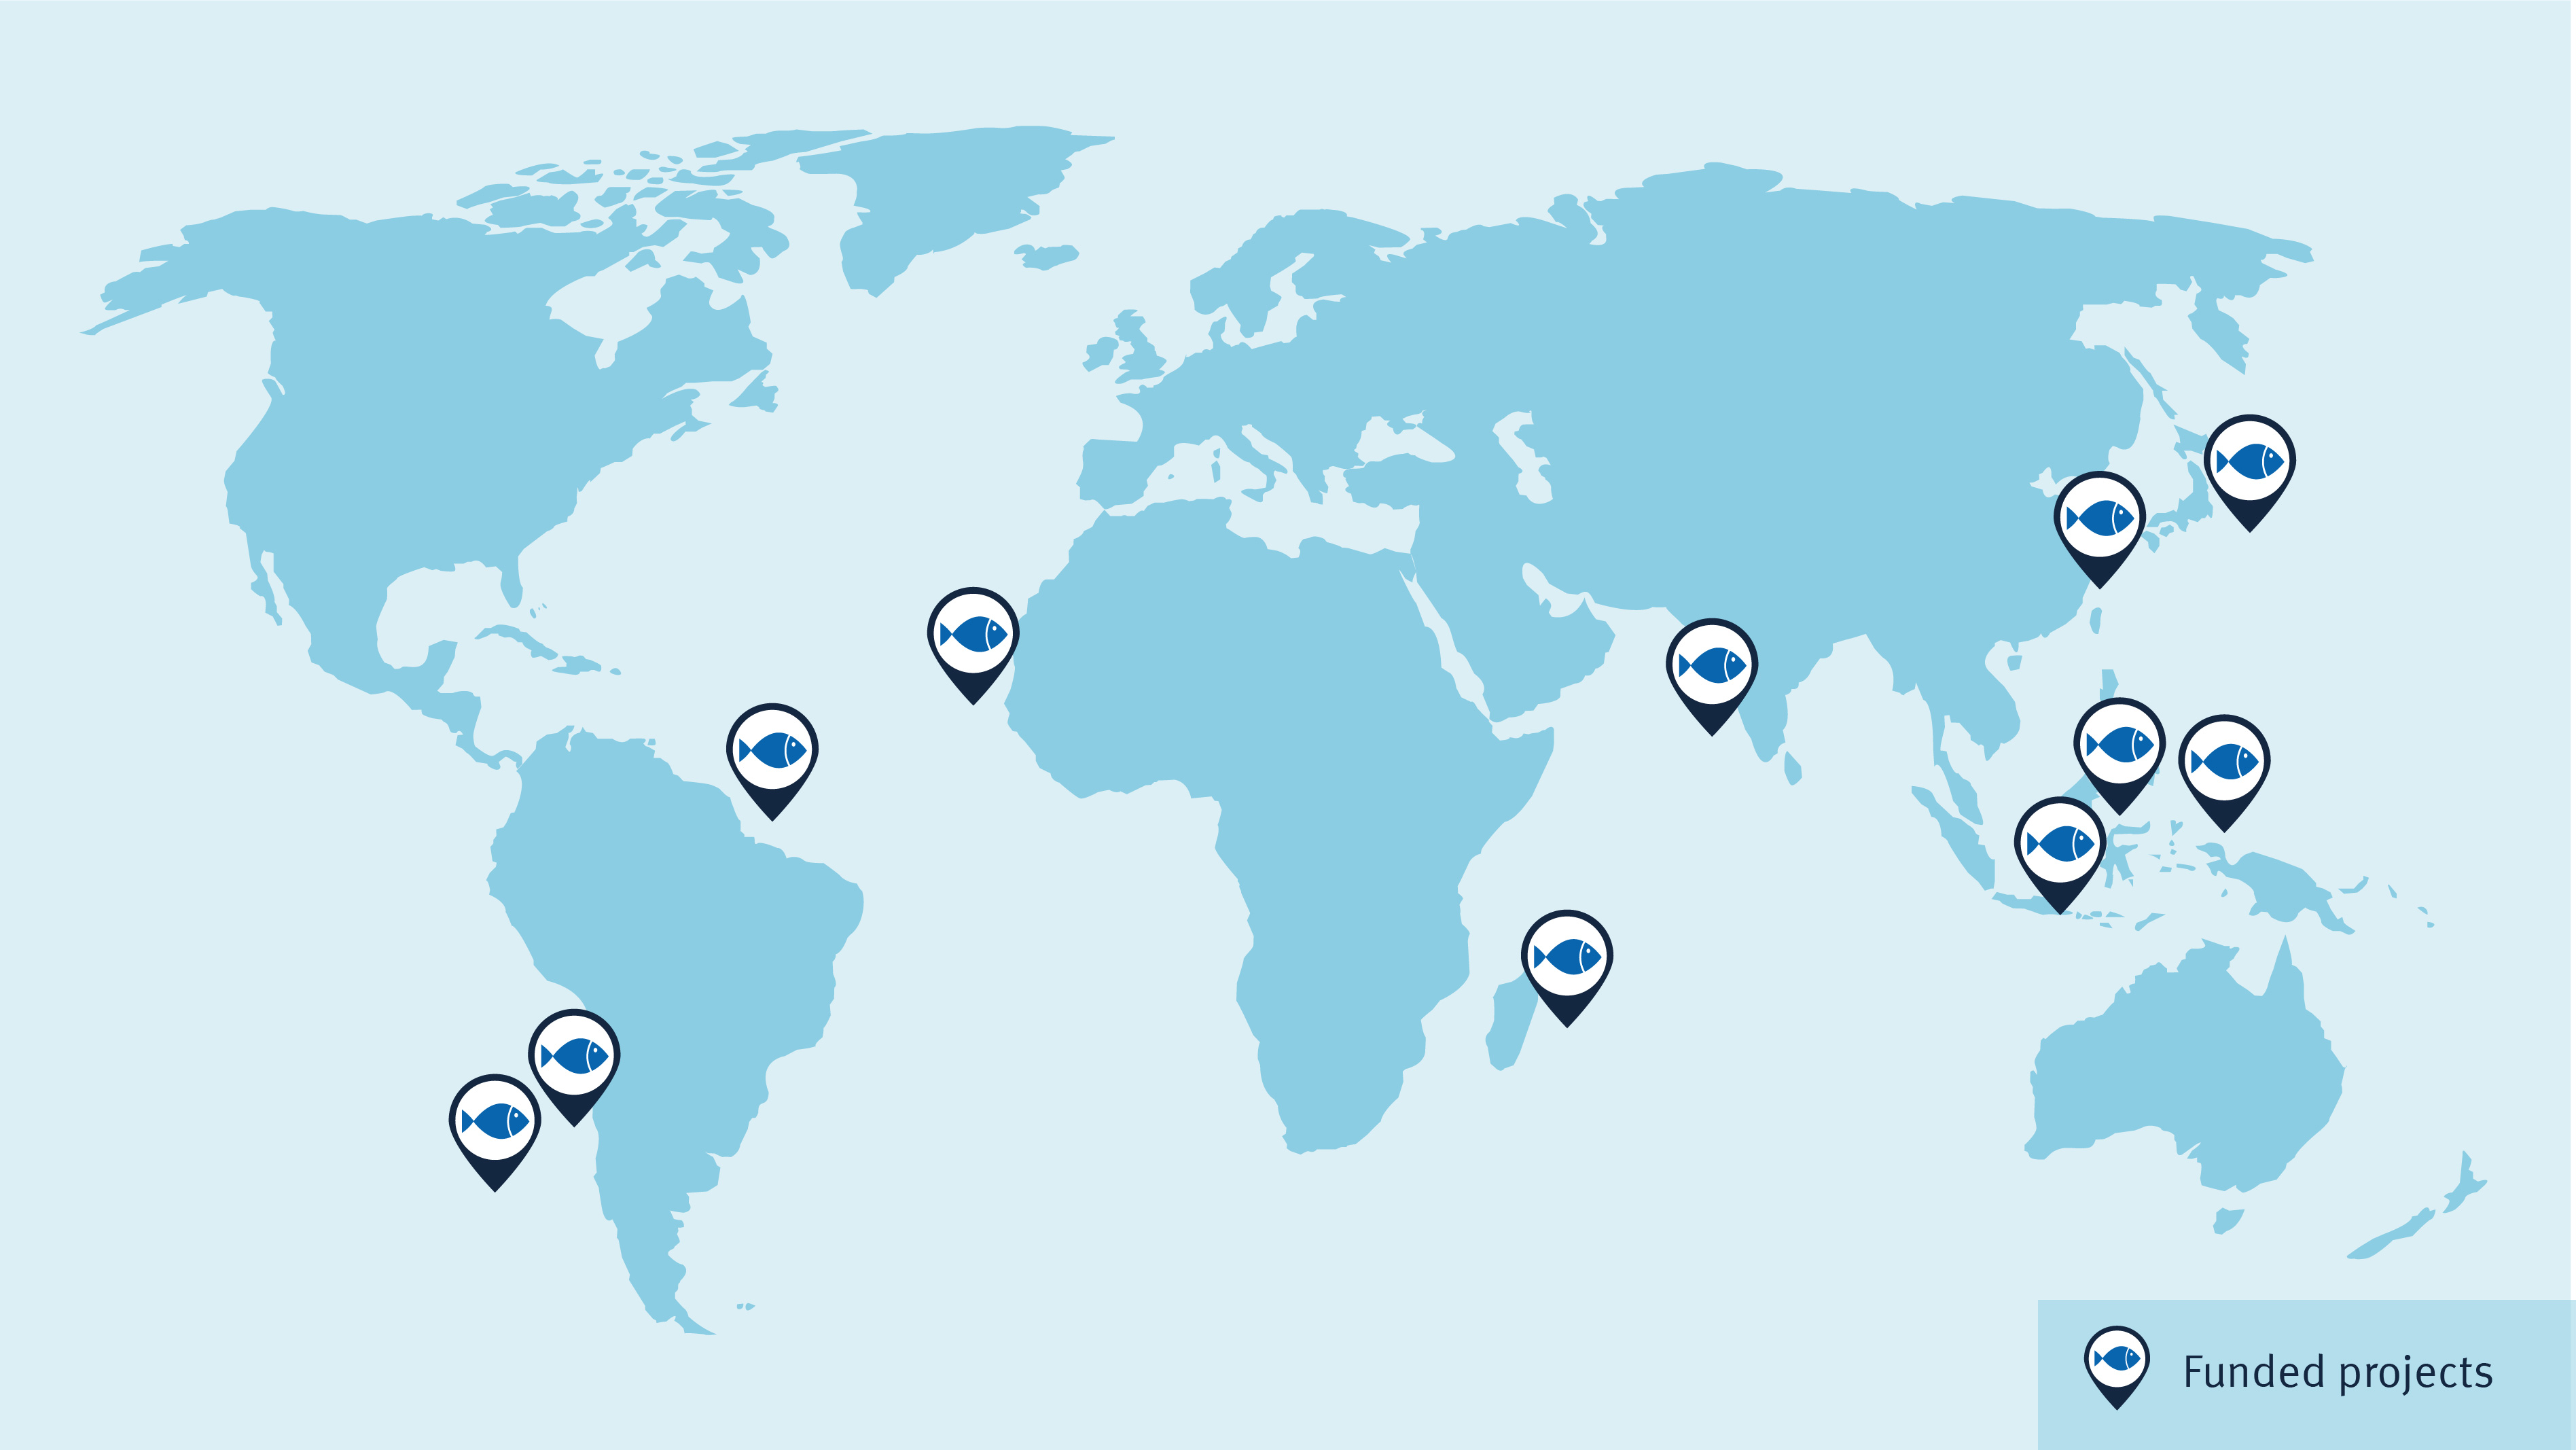 A map showing the locations of the eleven funded projects around the world. Six projects are in Asia, two in Africa and three in South America.